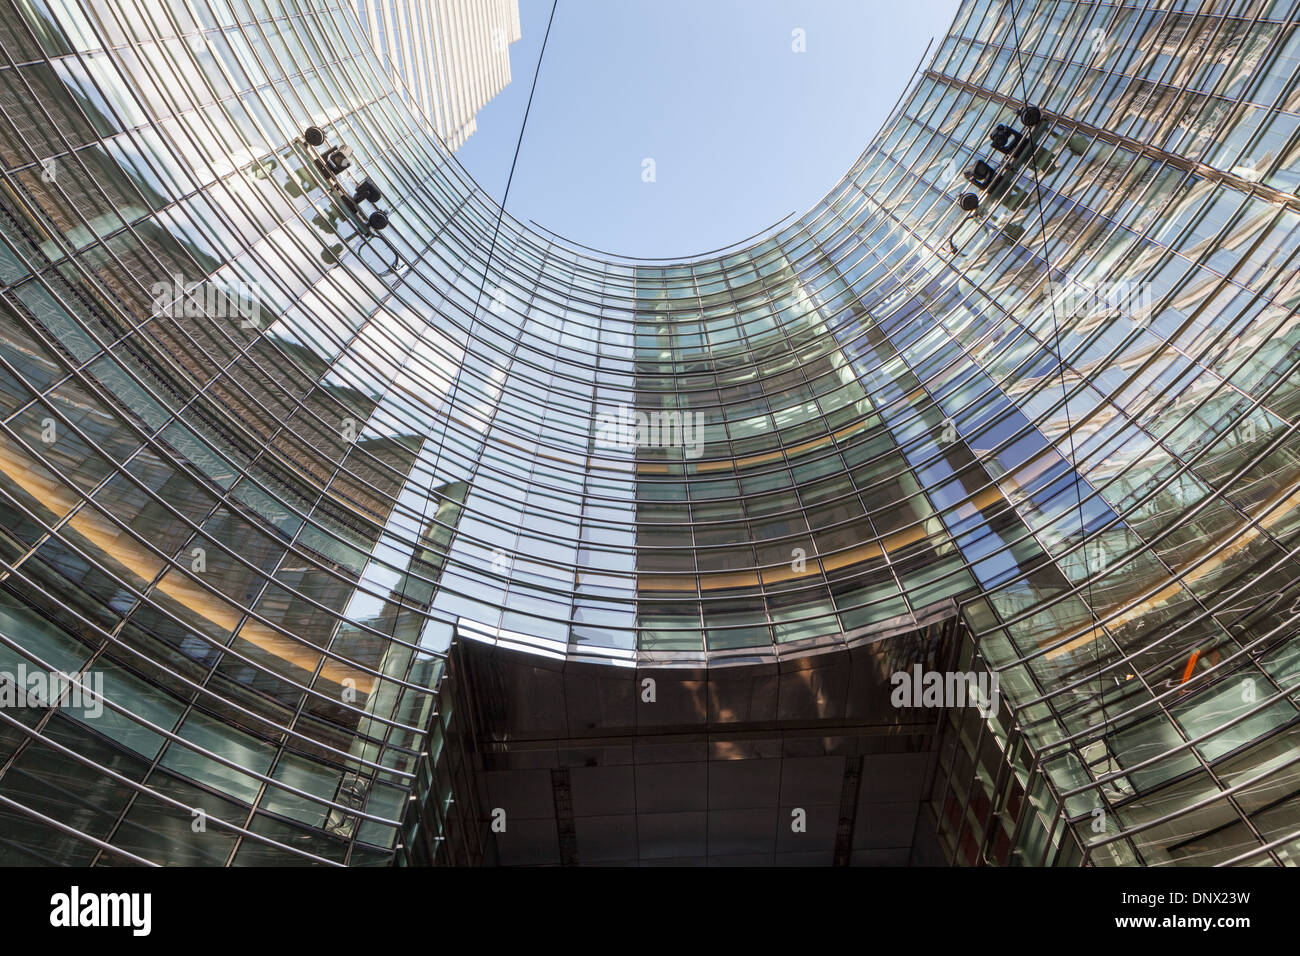 Bloomberg Tower, has seven-story curved atrium and open plaza, César Pelli architects, New York City, 2005. - Stock Image